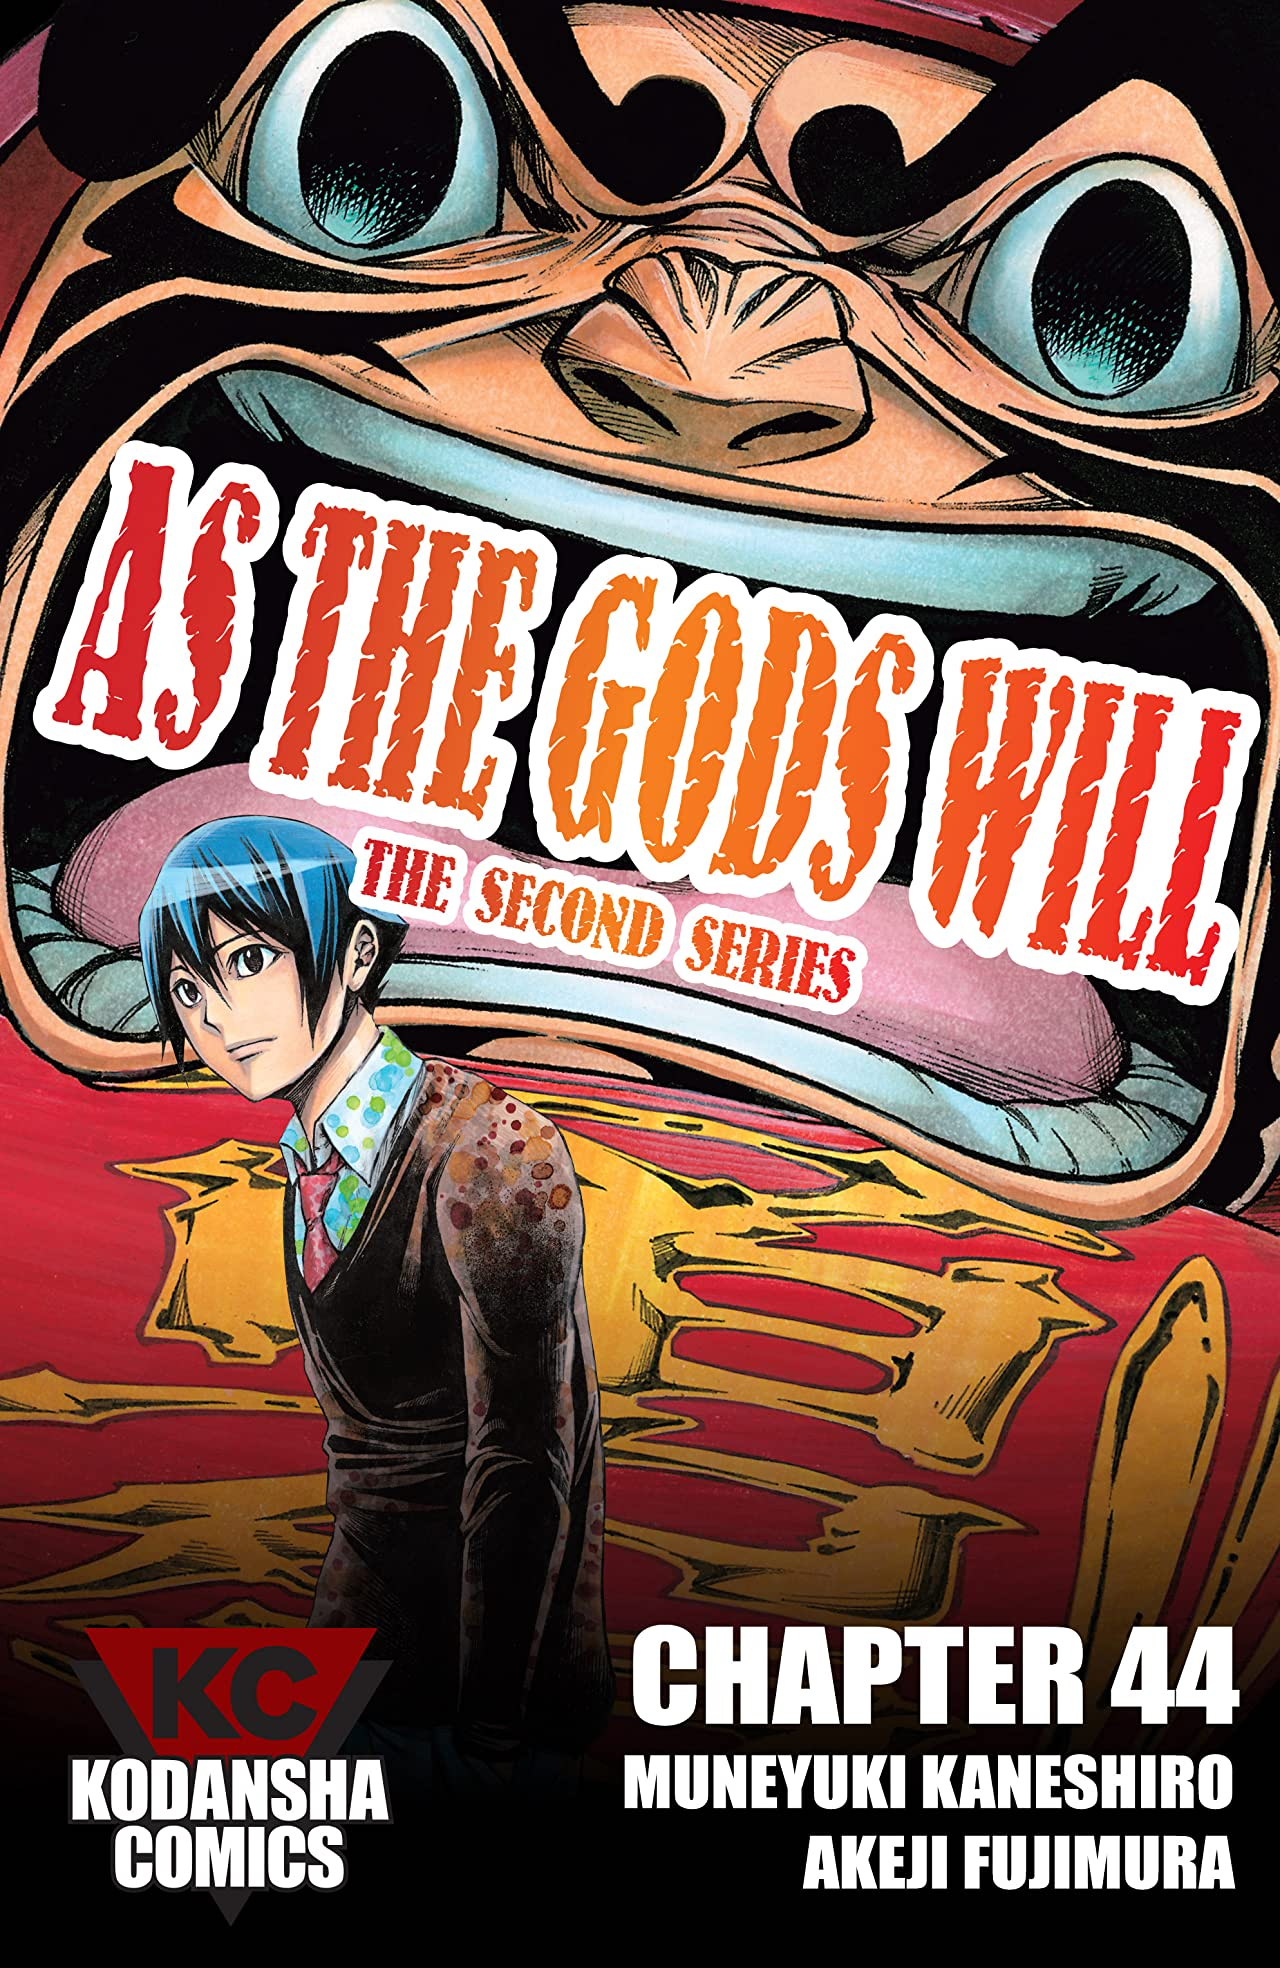 As The Gods Will: The Second Series #44